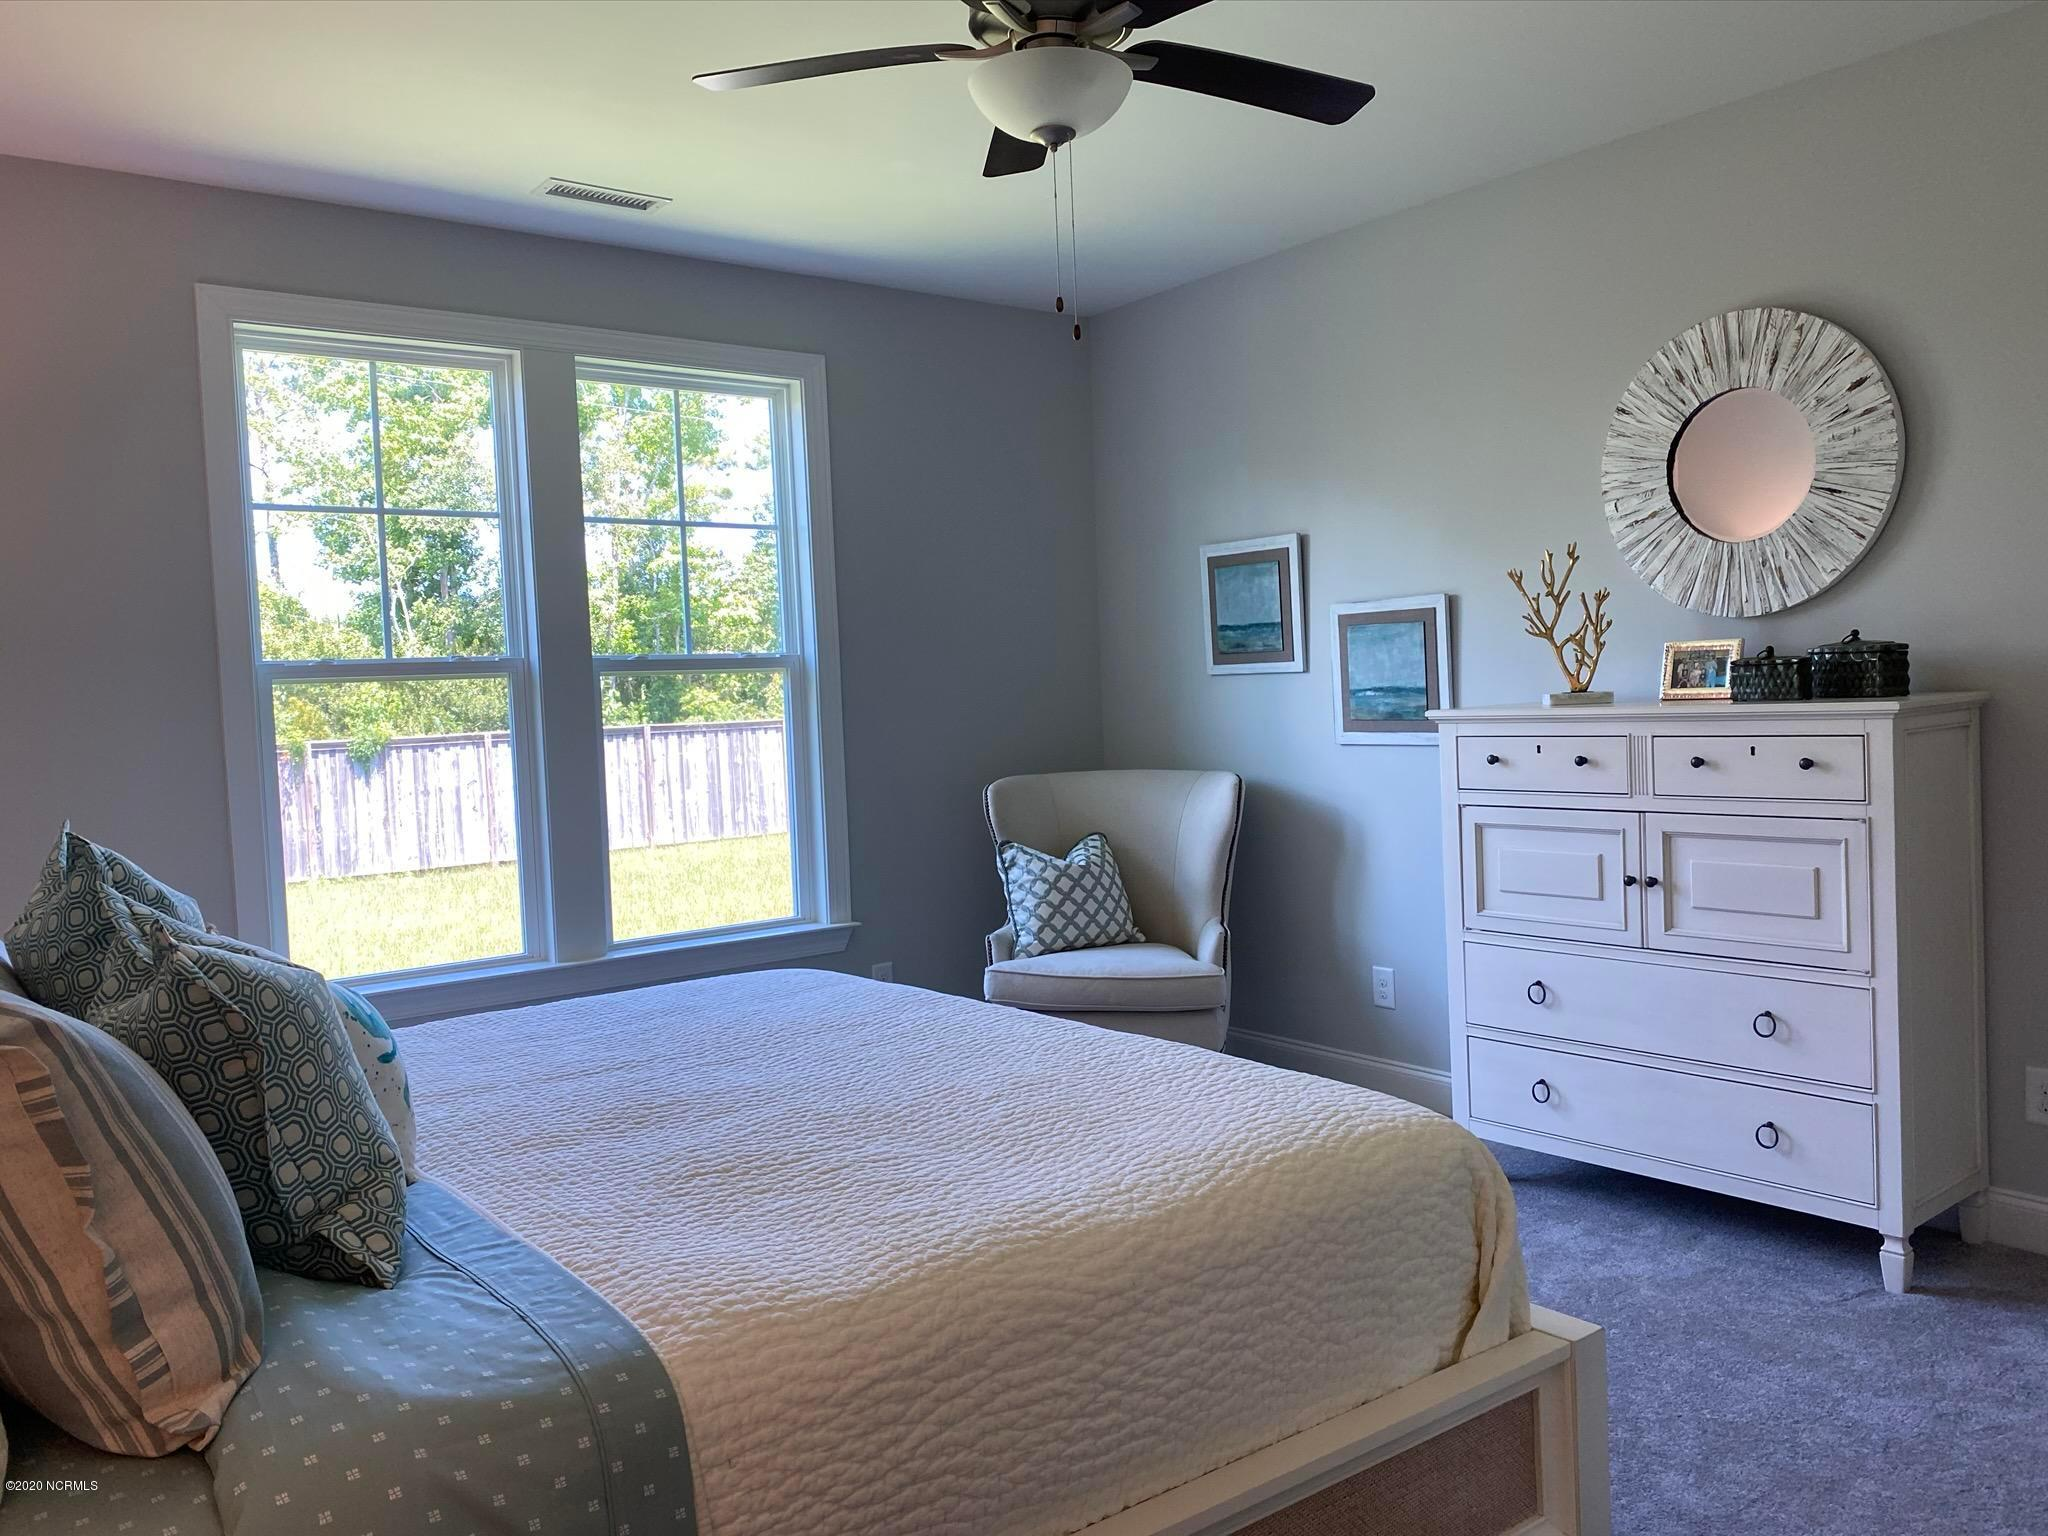 Bedroom featured in the 31 Shooting Star By RobuckHomes in Jacksonville, NC